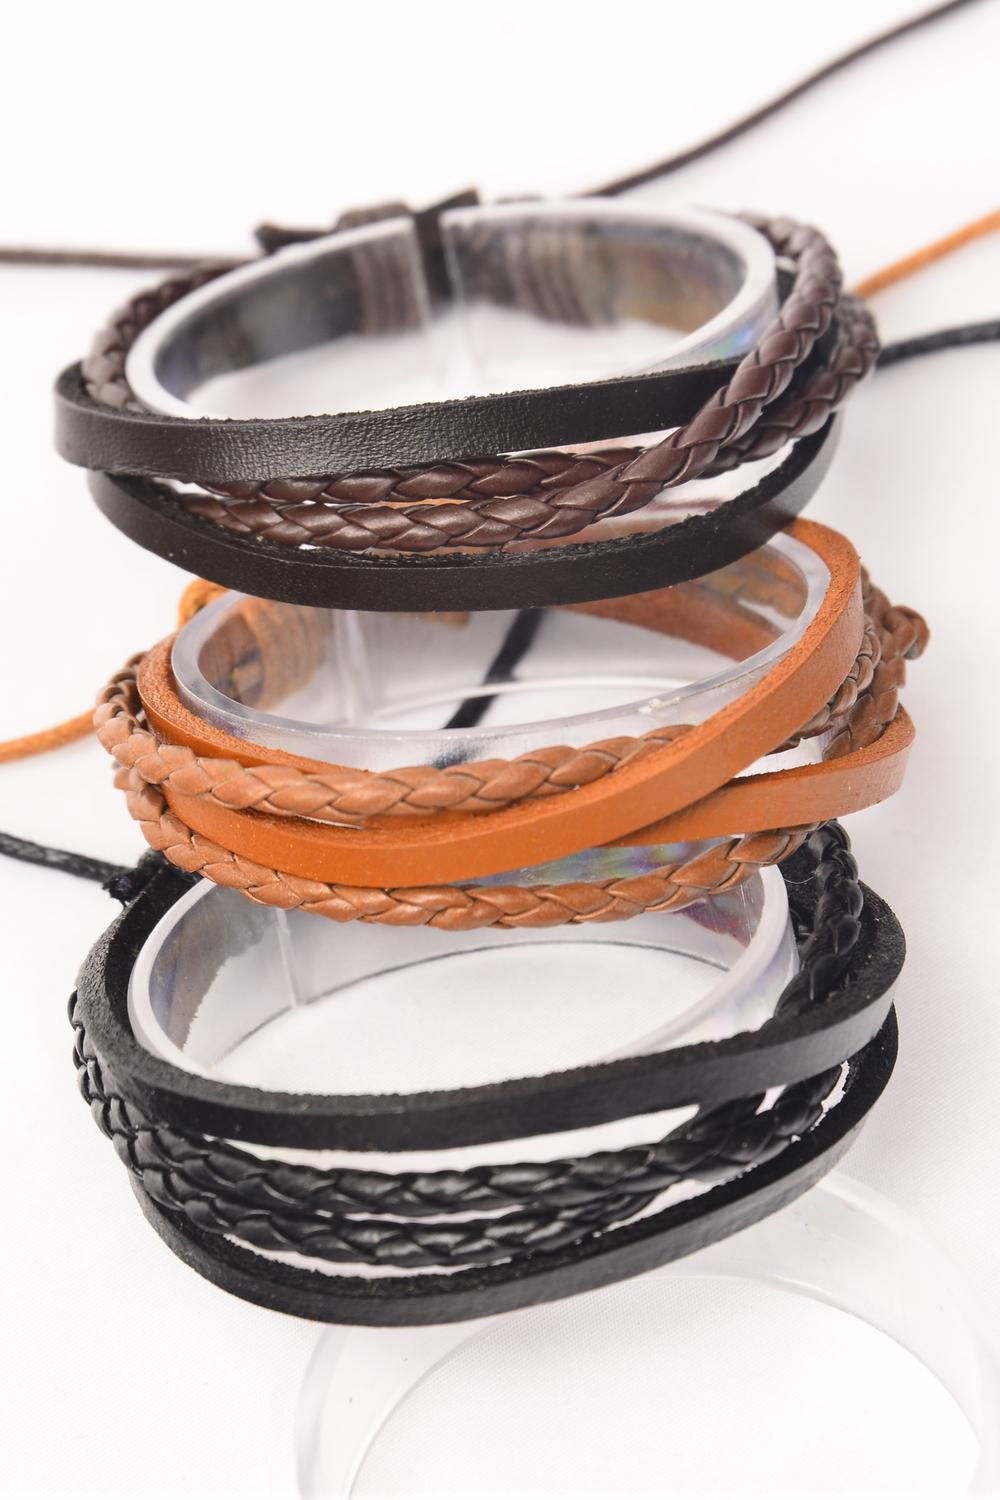 Bracelet Real Leather & Braid style Mix/DZ **Unisex** Adjustable,4 of each Color Asst,Hang Tag & OPP Bag & UPC Code